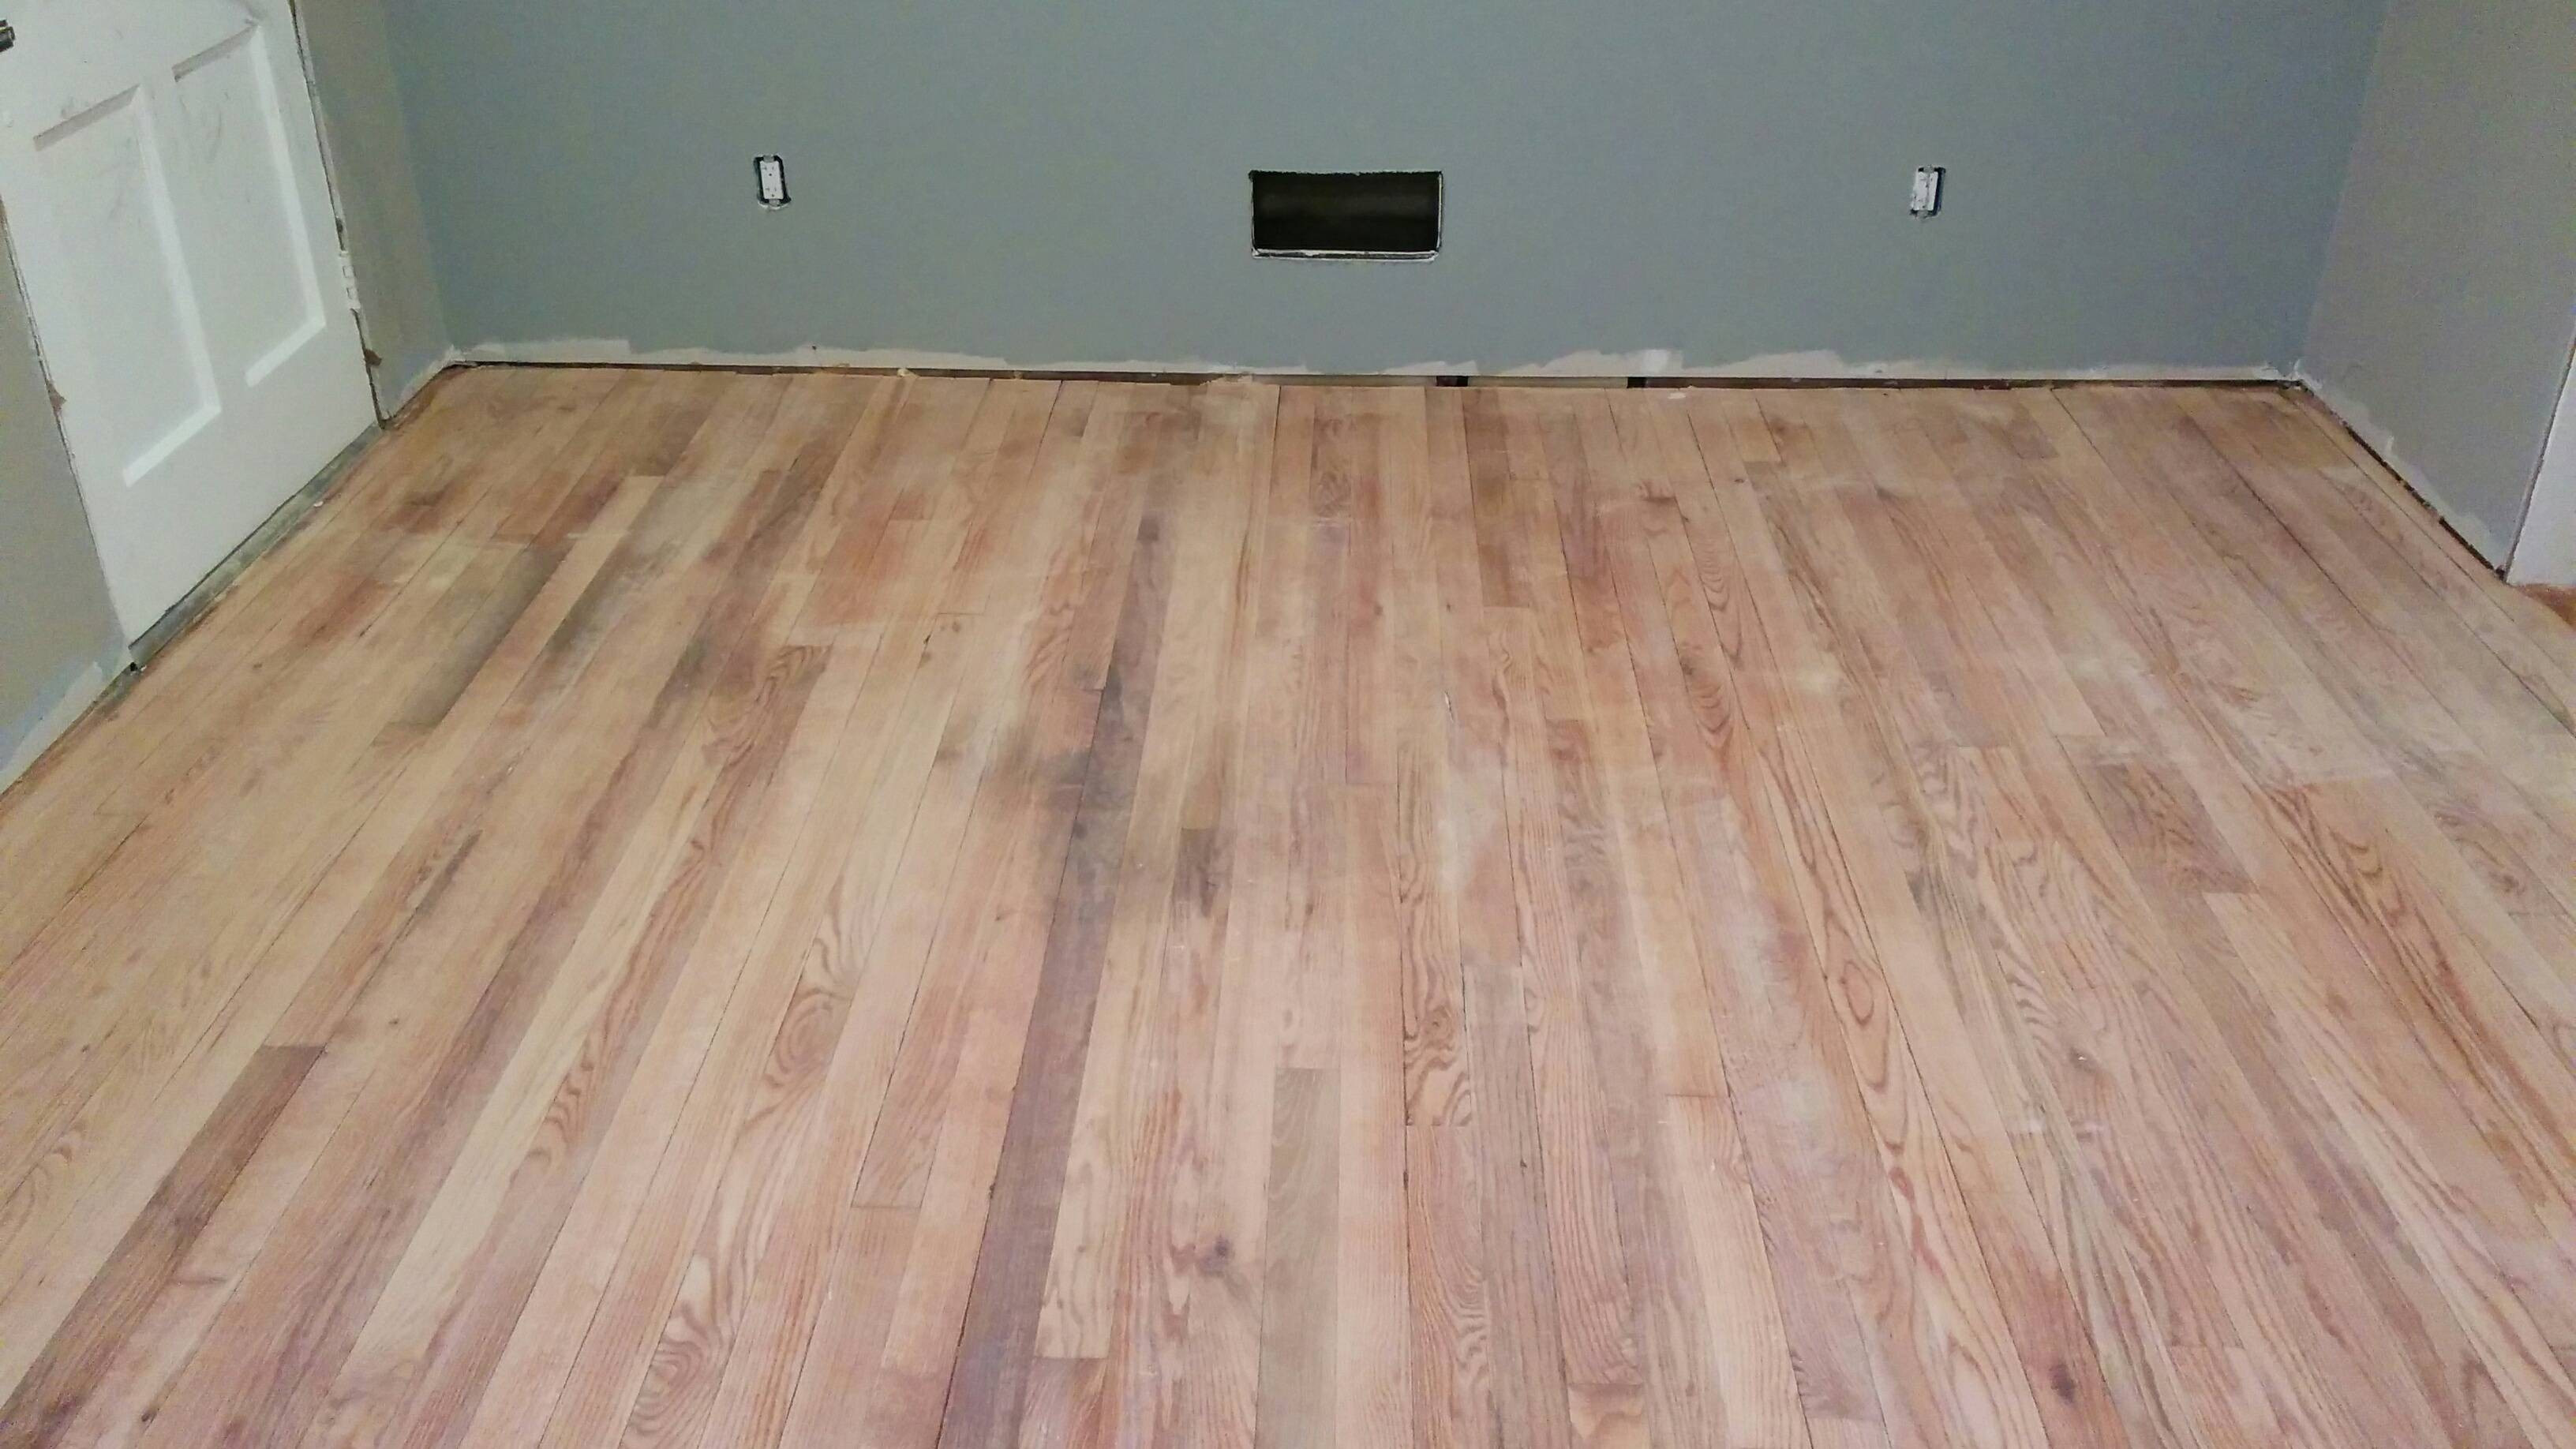 how to refinish hardwood floors with pet stains of bnudr price for sanding and refinishing hardwood floors sesa build com in bnudr price for sanding and refinishing hardwood floors